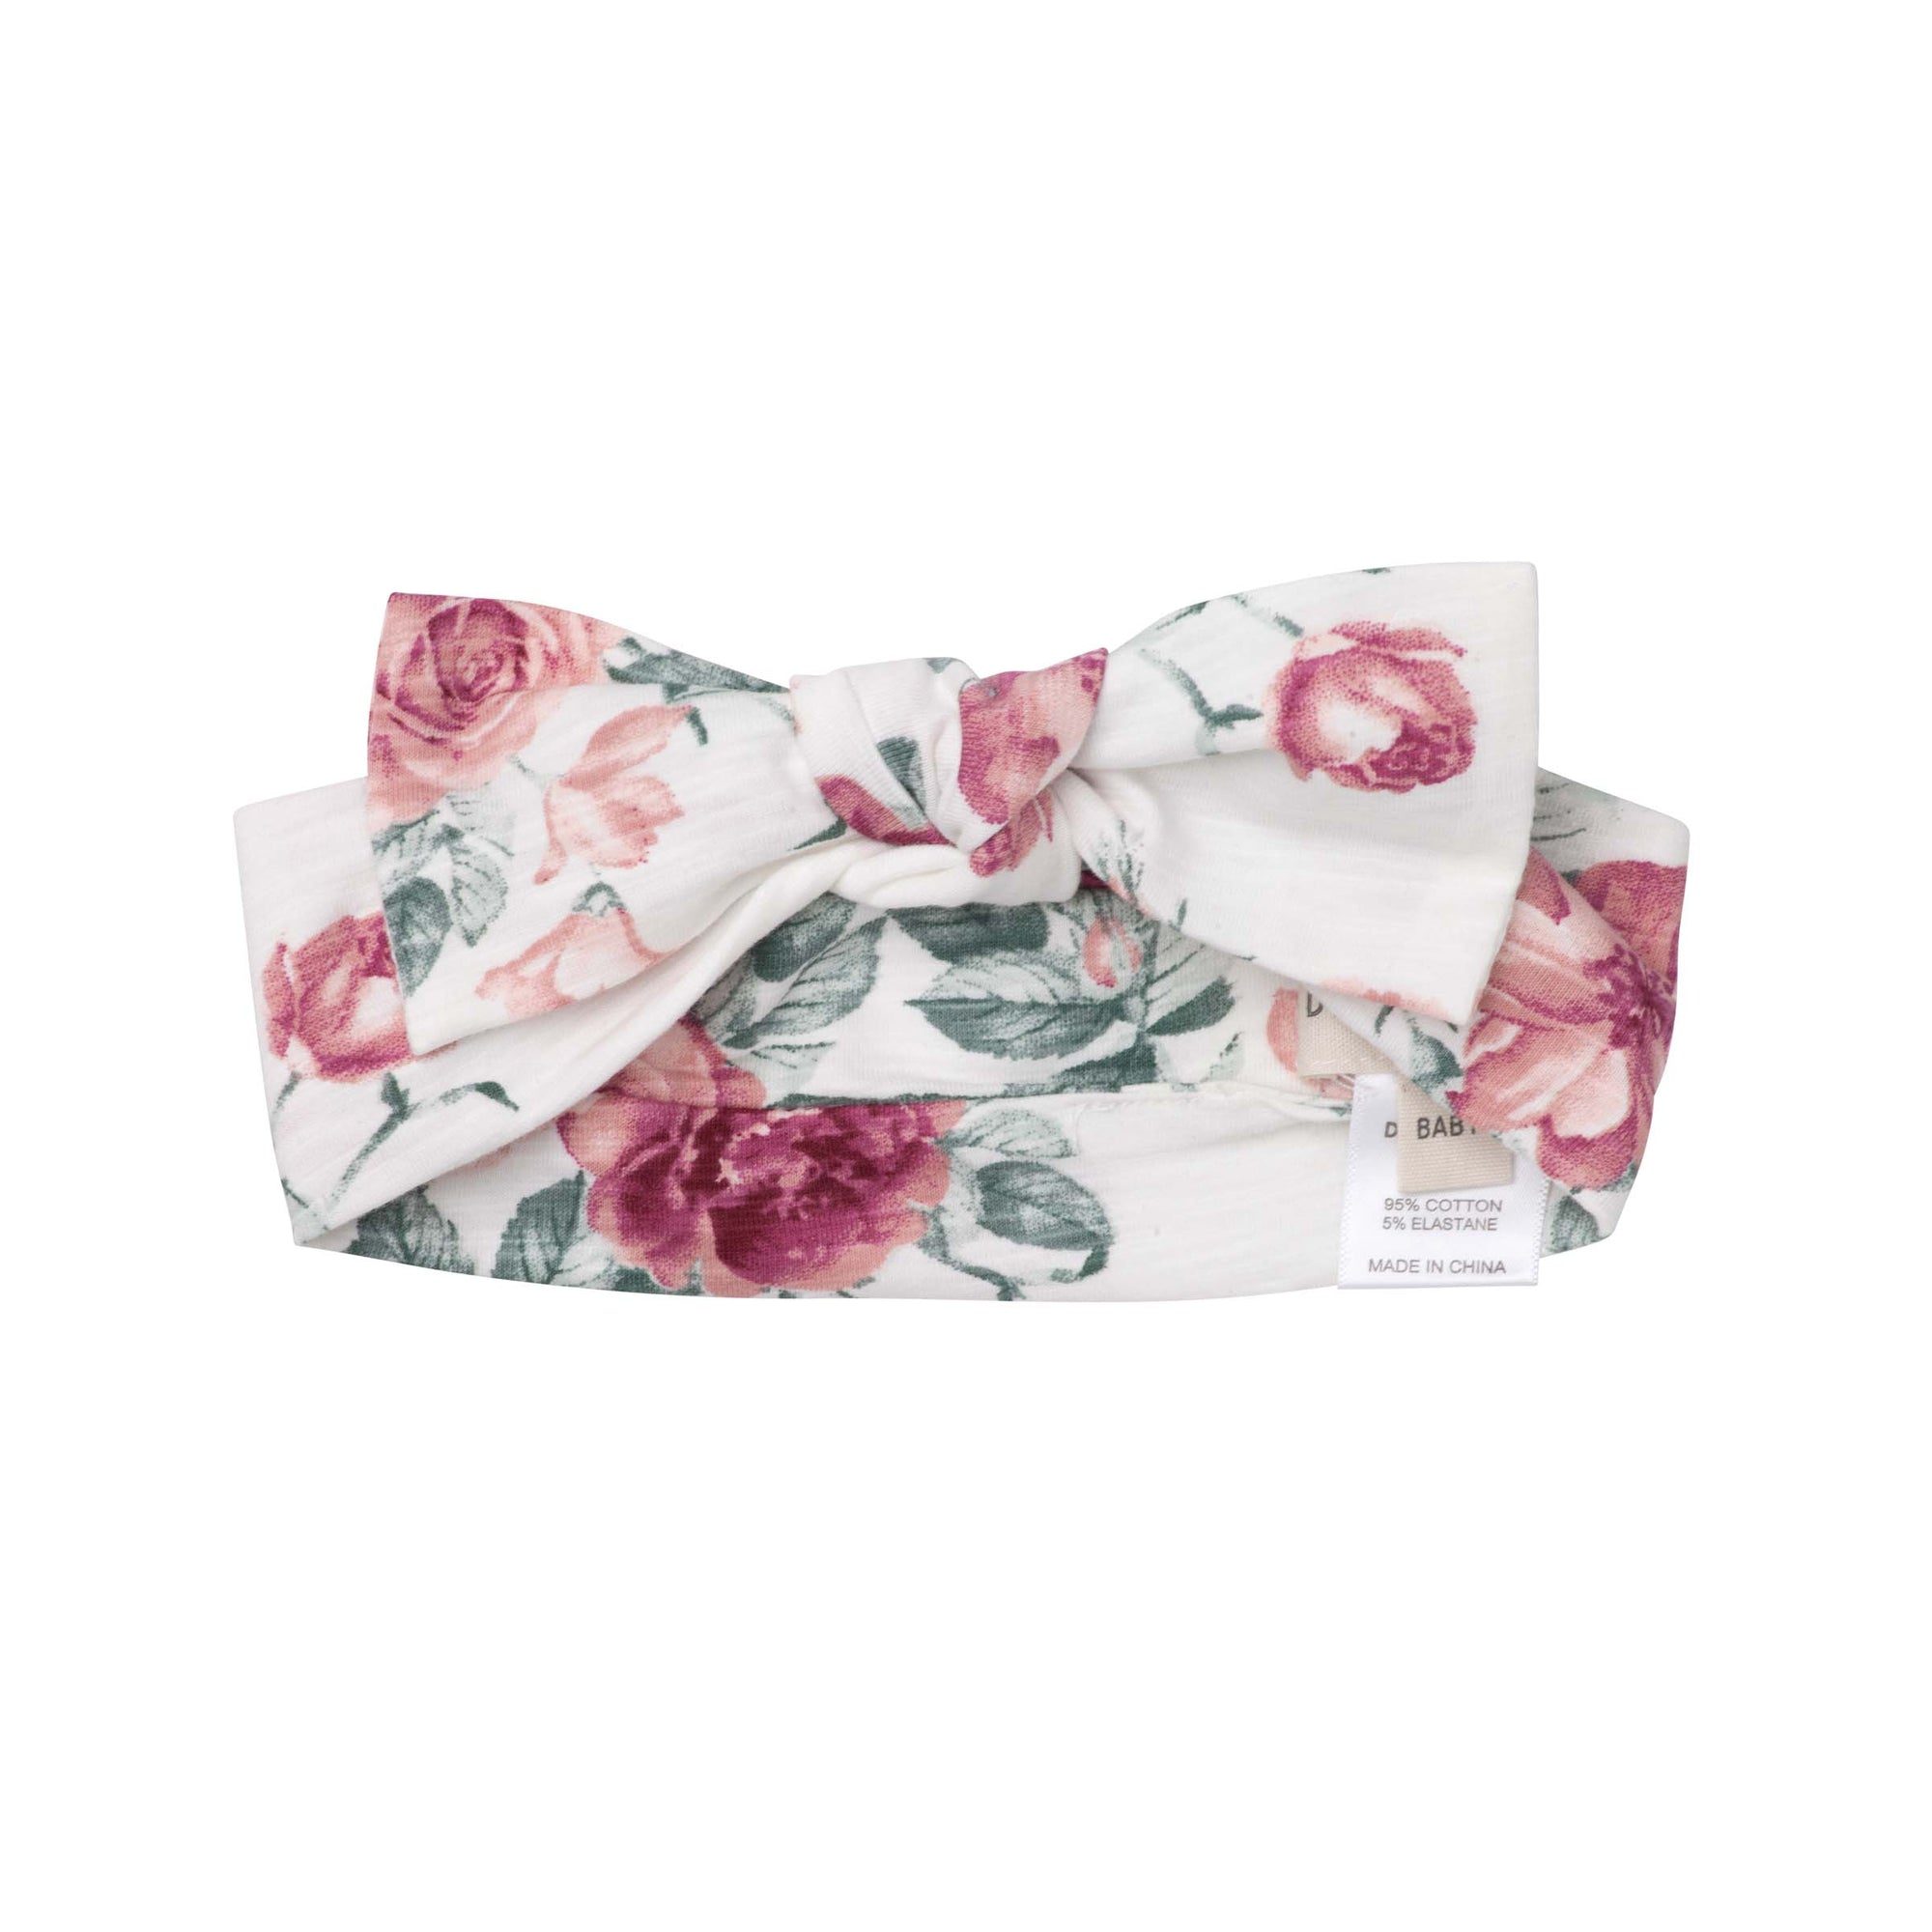 Buy Audrey Floral Headband - Tea Rose - Designer Kidz | Special Occasions, Party Wear & Weddings  | Sizes 000-16 | Little Girls Party Dresses, Tutu Dresses, Flower Girl Dresses | Pay with Afterpay | Free AU Delivery Over $80